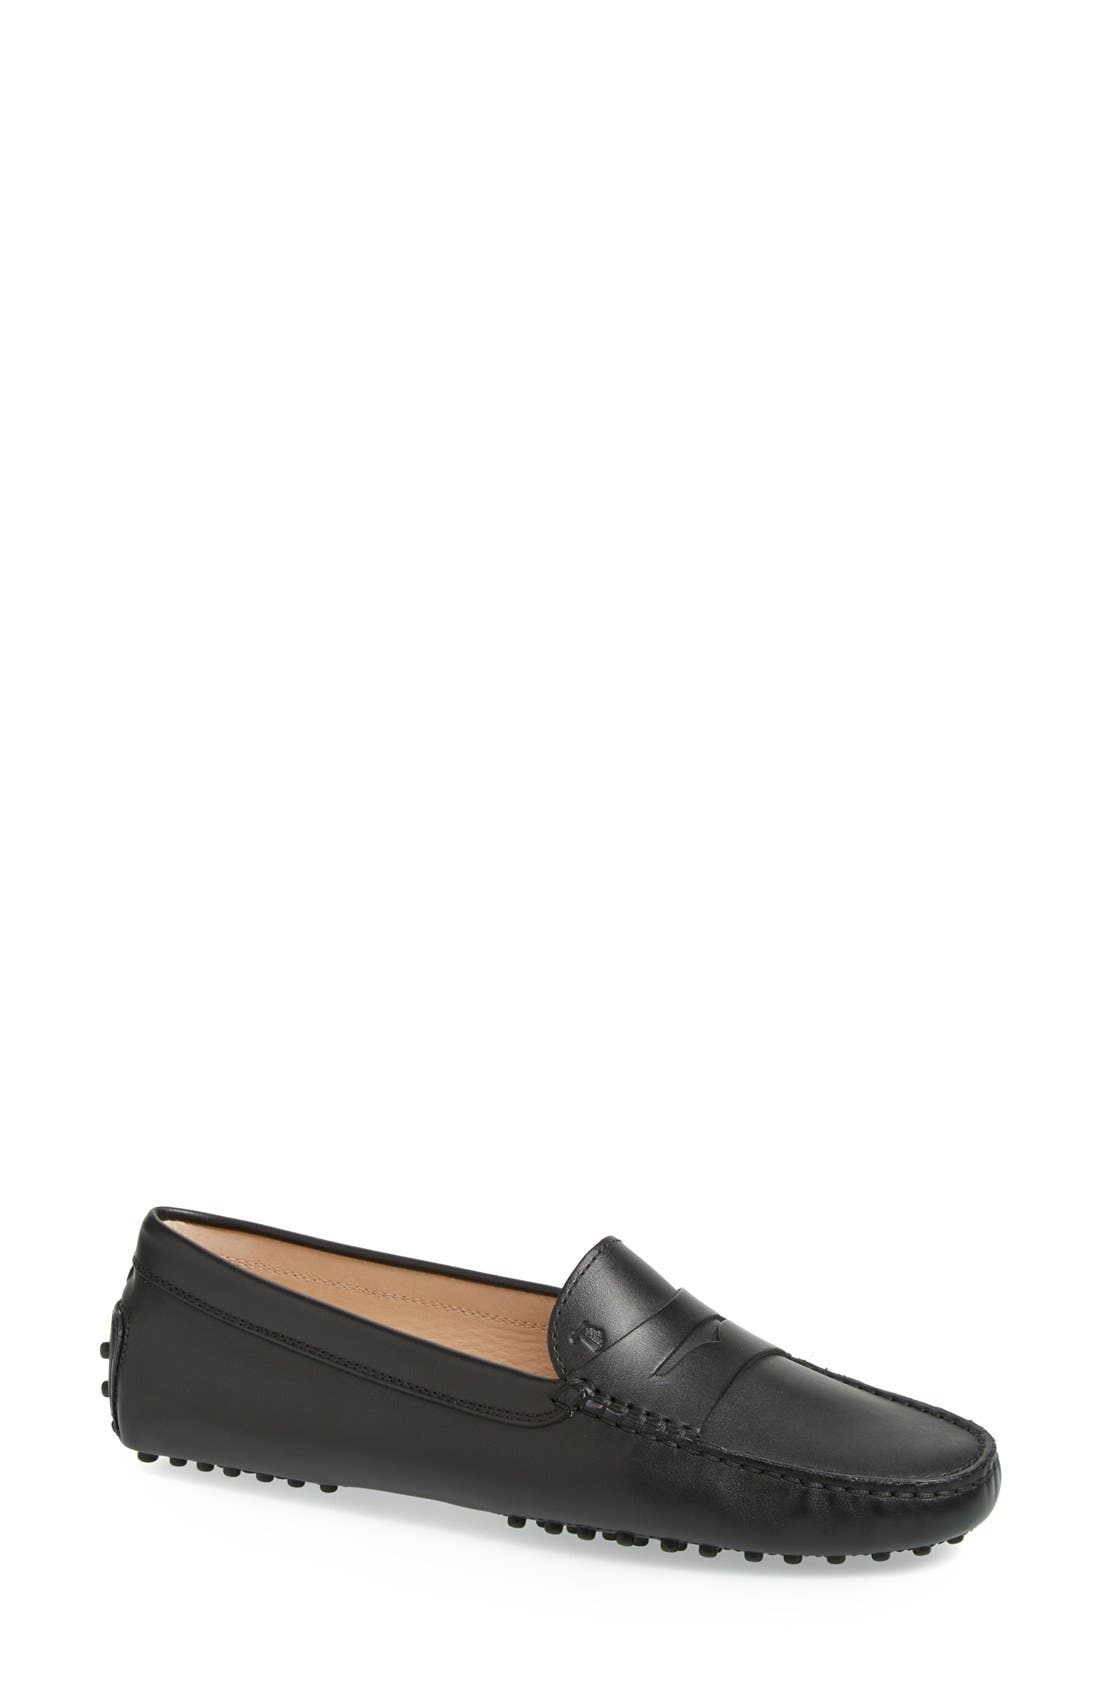 'Gommini' Driving Moccasin,                         Main,                         color, Black